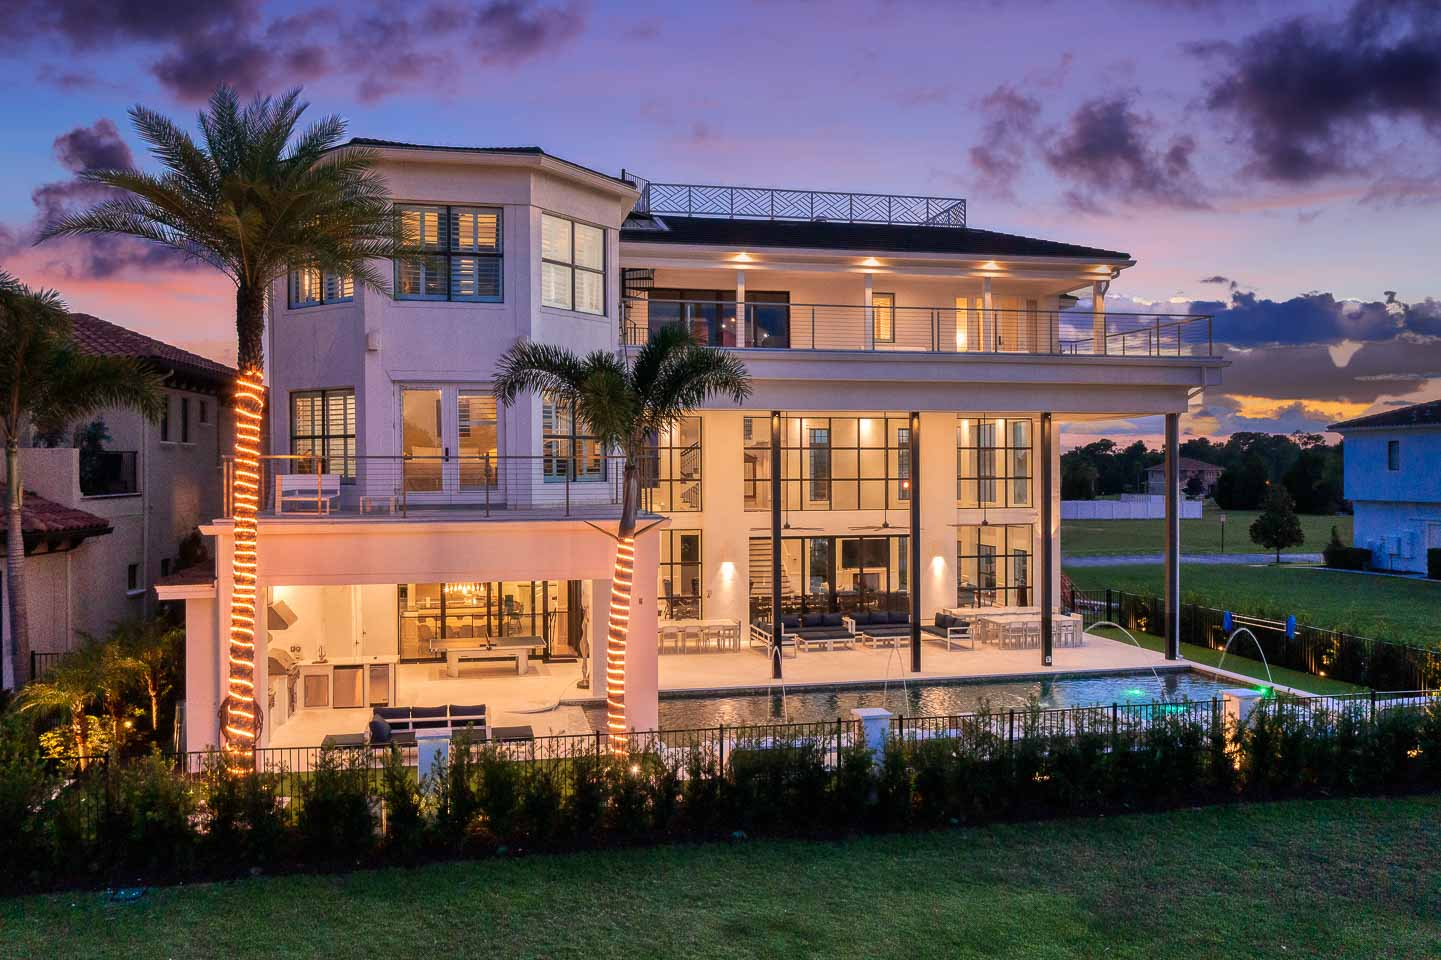 The Eclectic Colonial Estate-213643